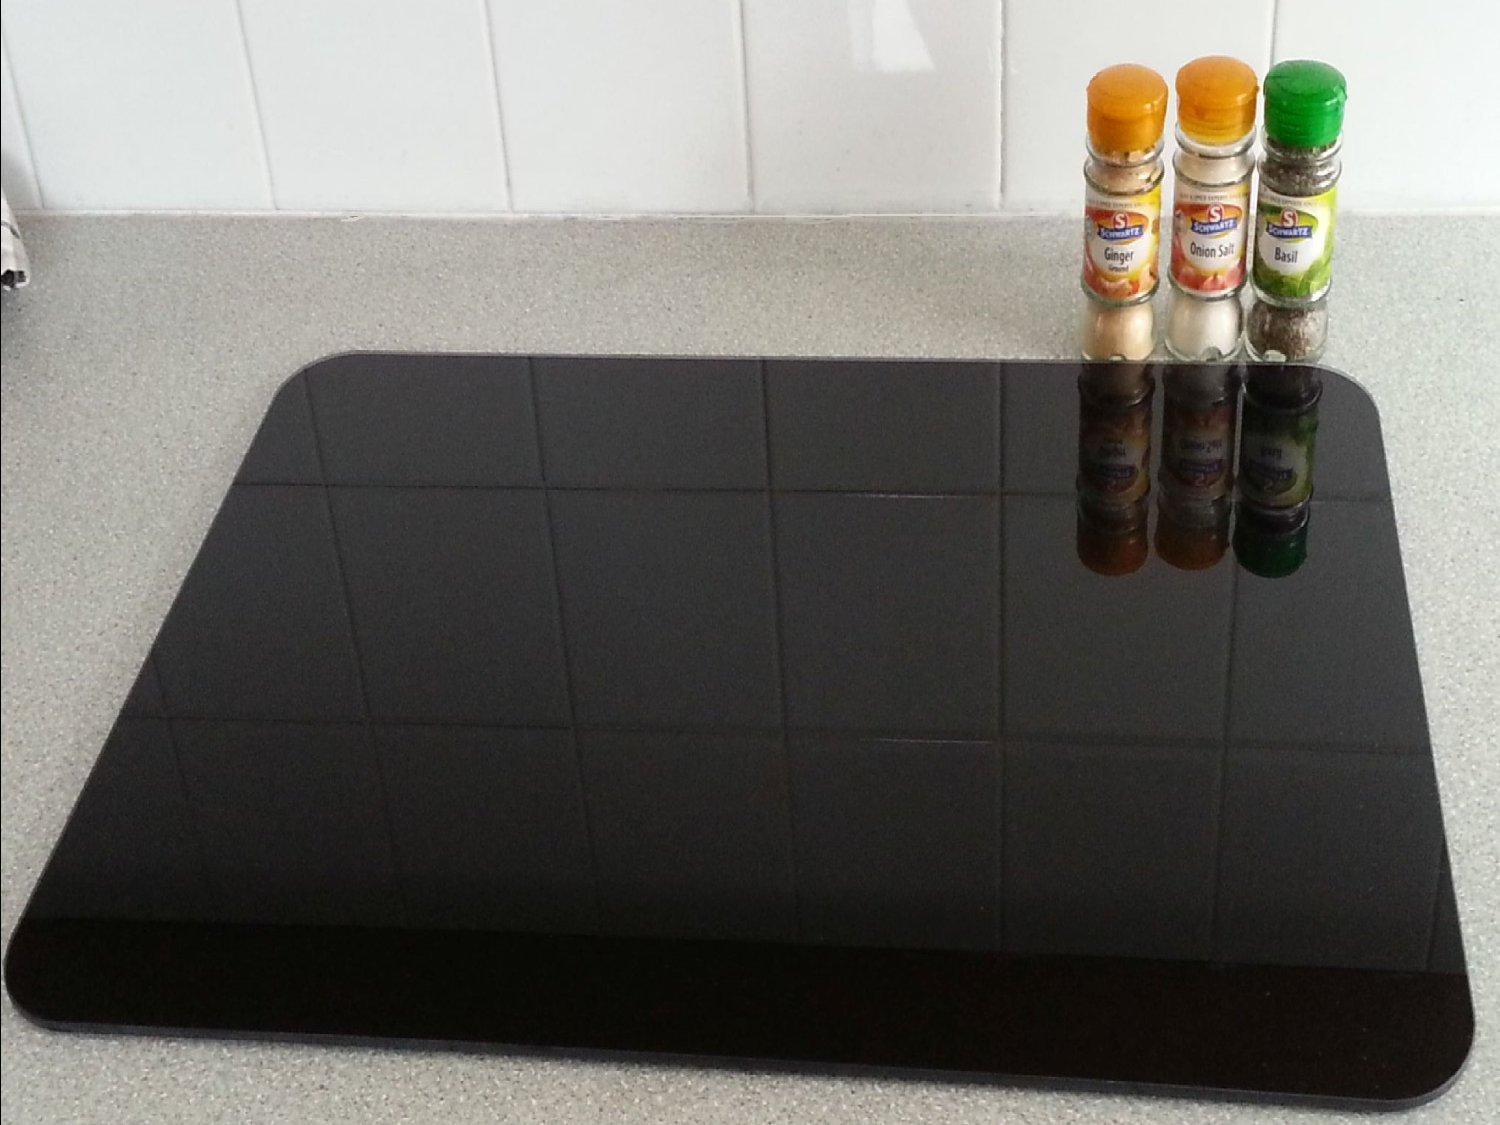 Black Smooth & Flat Float Glass Worktop Saver - 50 x 40cm by Pearl Glass